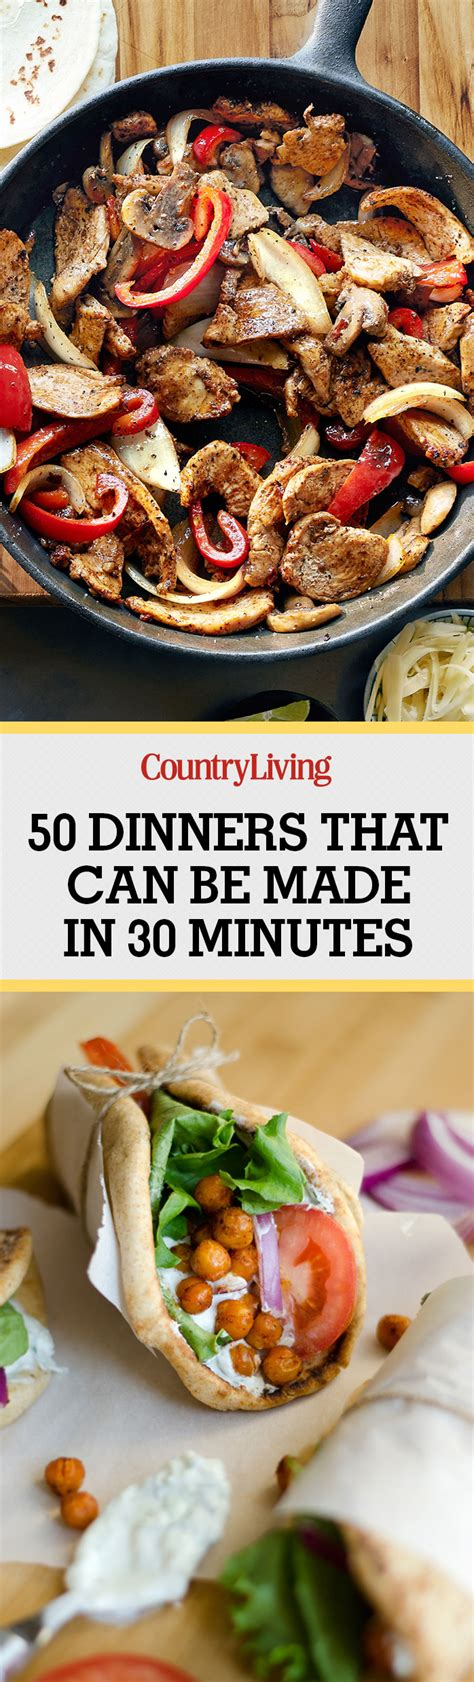 cuisine minute 90 and easy dinners best recipes for 30 minute meals